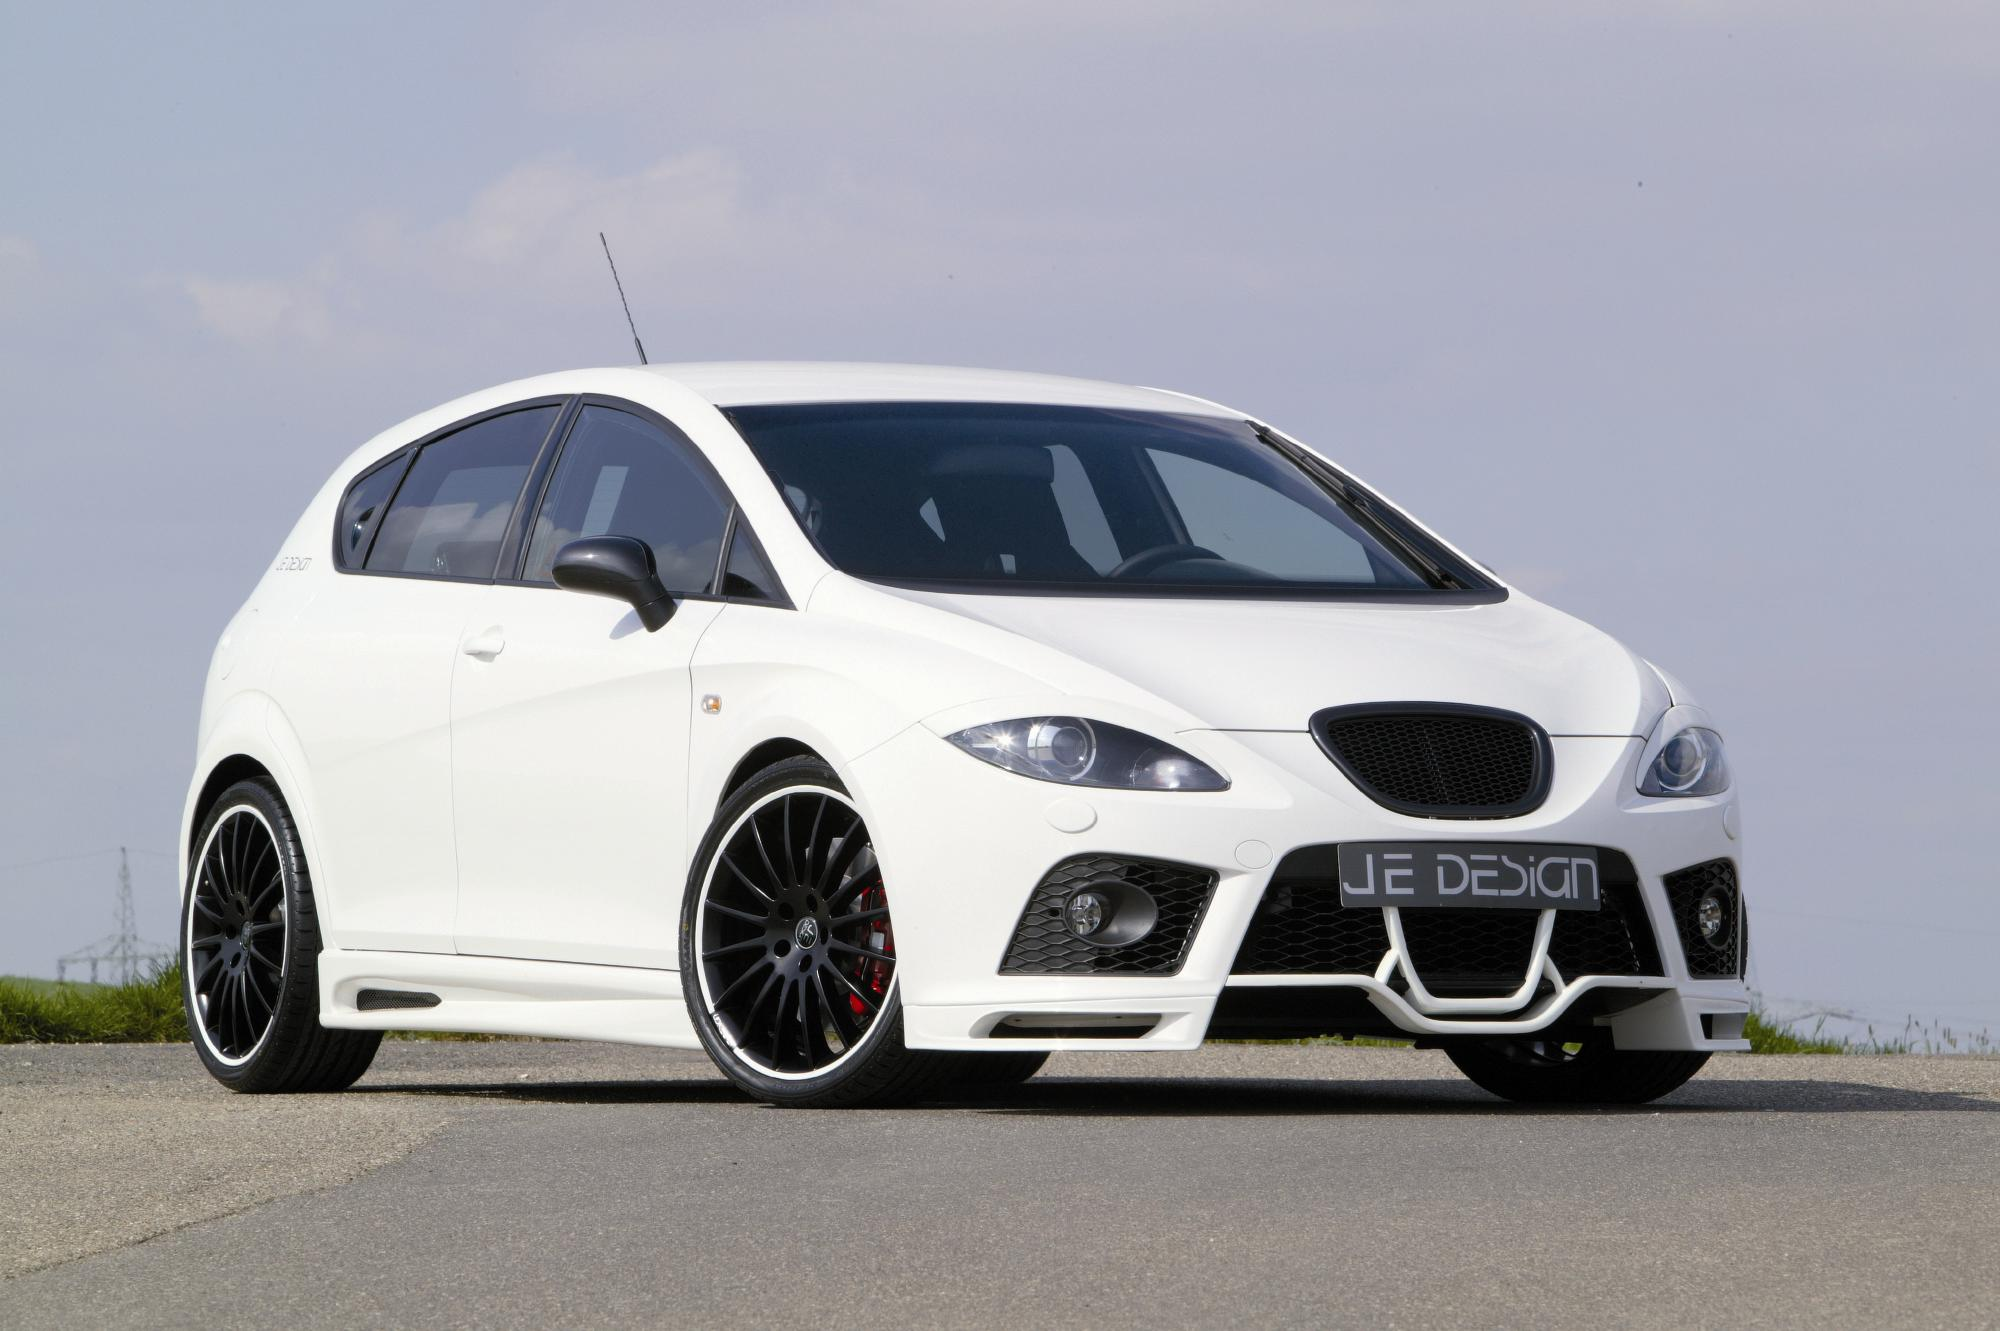 seat leon 1 p cupra by je design review top speed. Black Bedroom Furniture Sets. Home Design Ideas